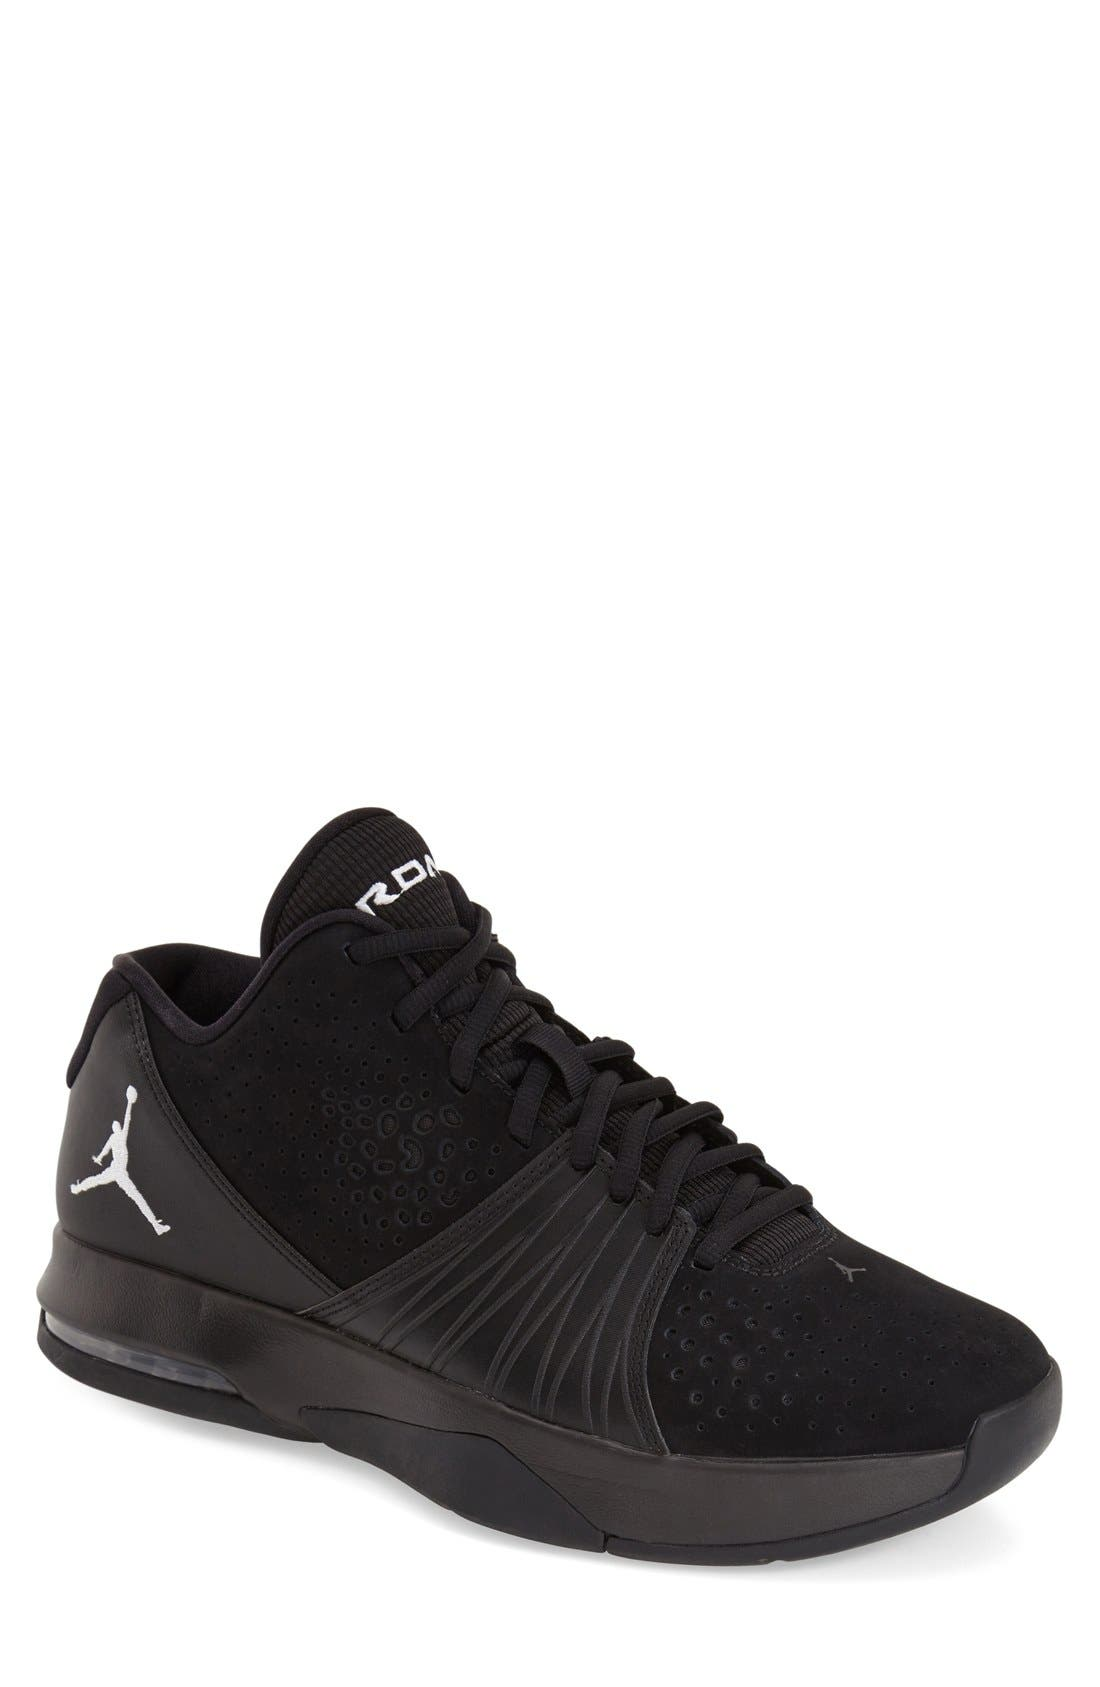 NIKE 'Air Jordan 5AM' Training Shoe, Main, color, 010